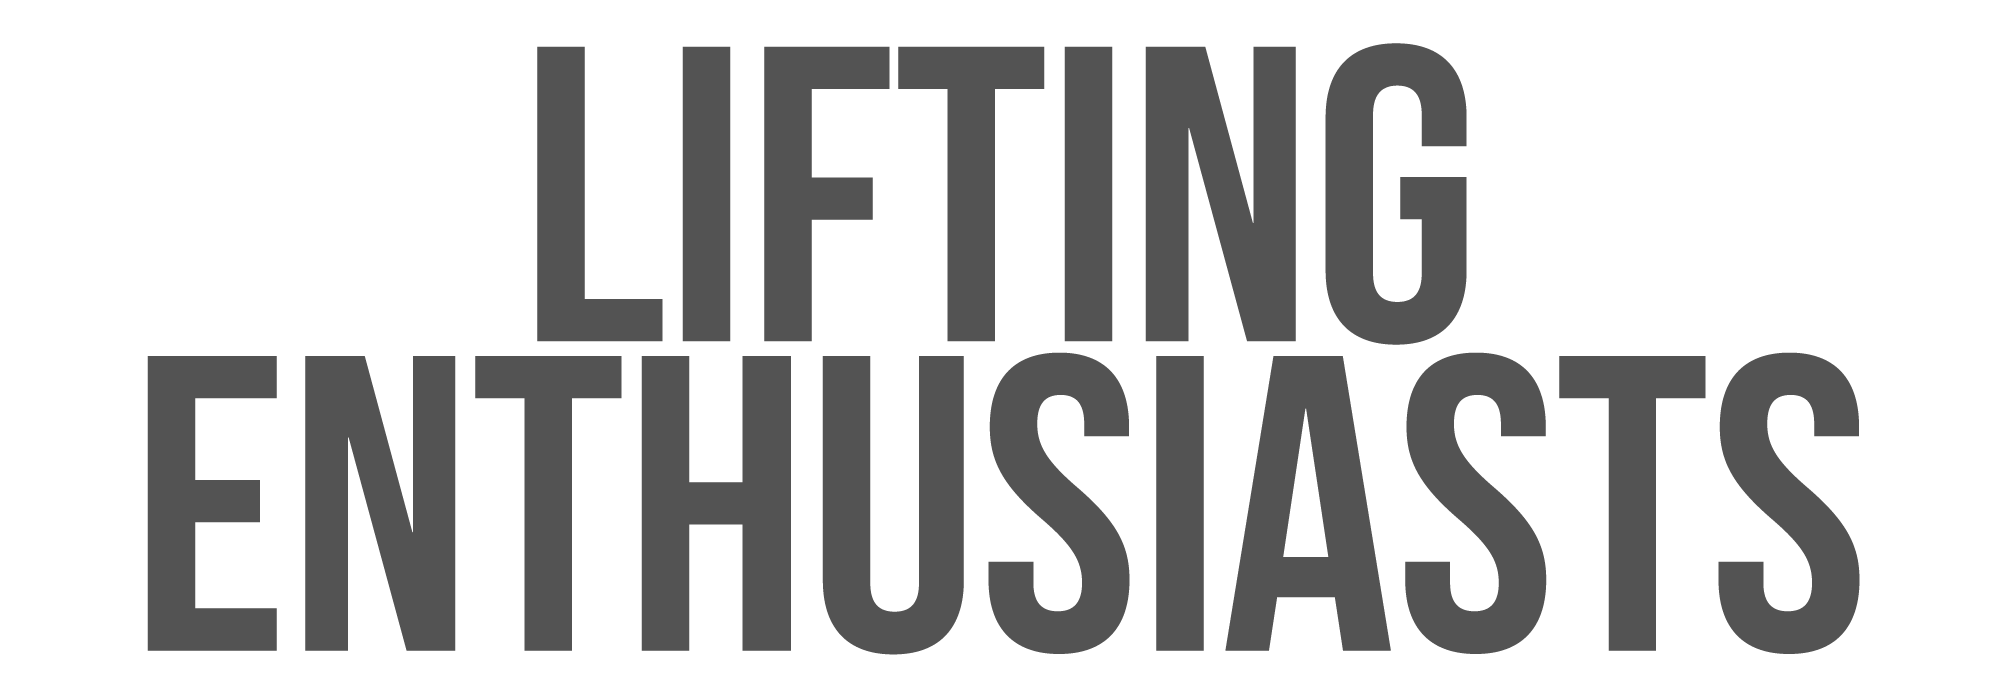 LIFTING ENTHUSIASTS